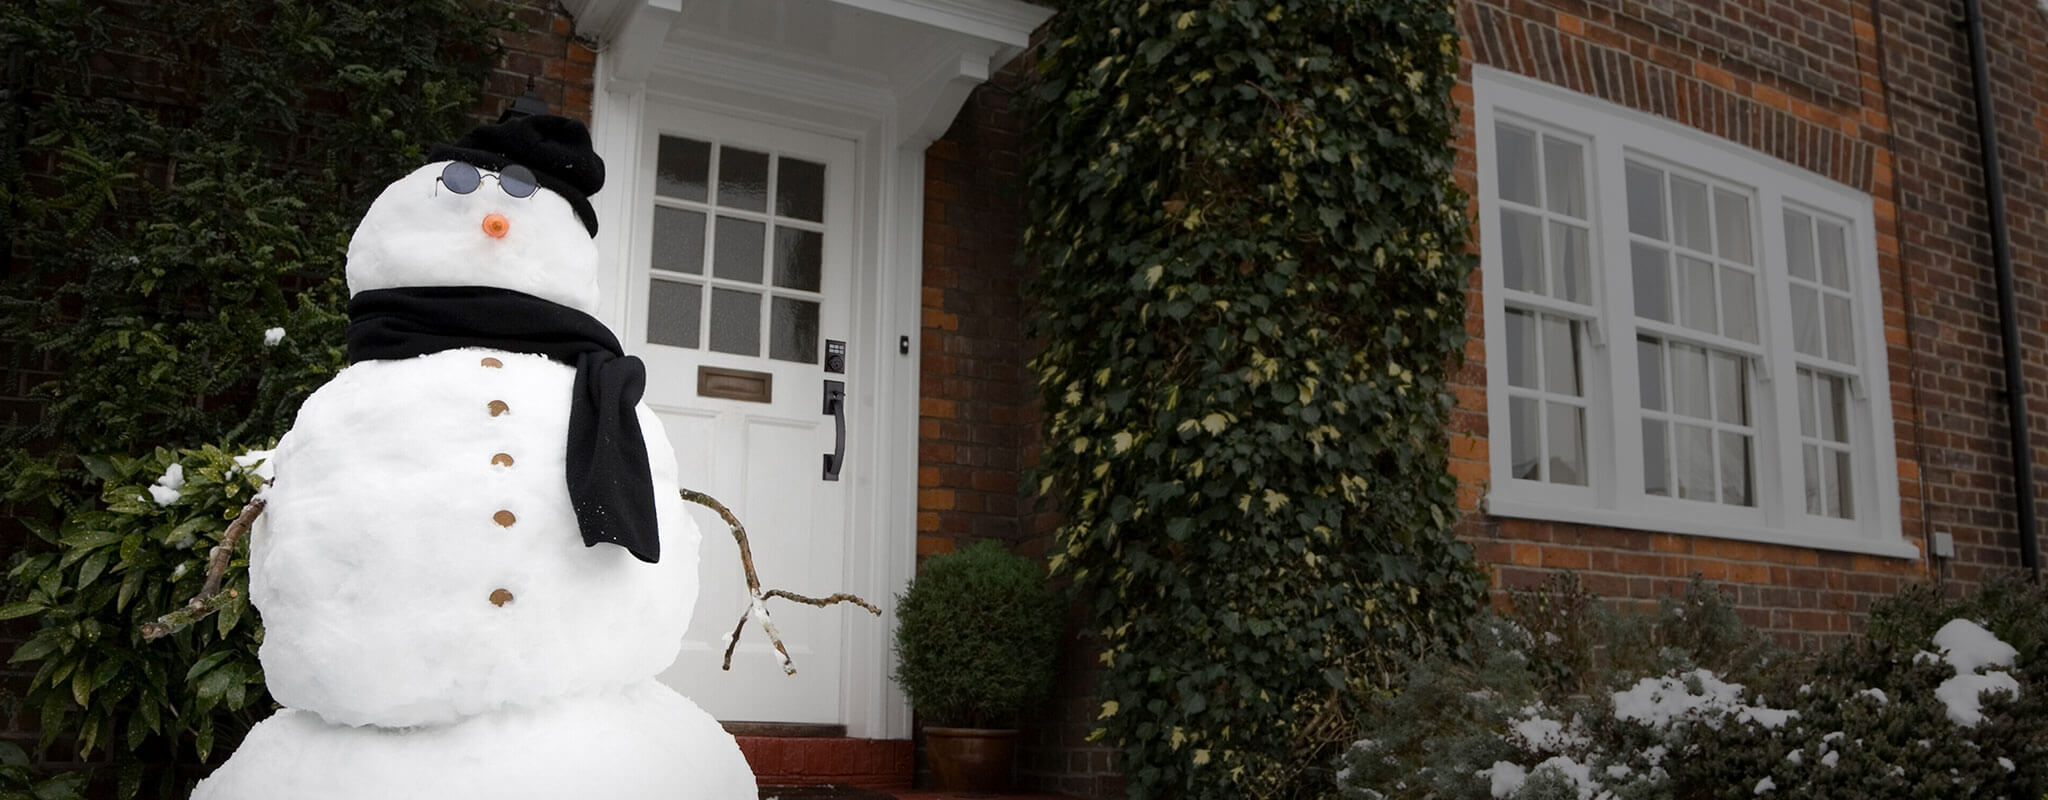 Large snowman with glasses, scarf and hat sitting on front lawn outside of a house